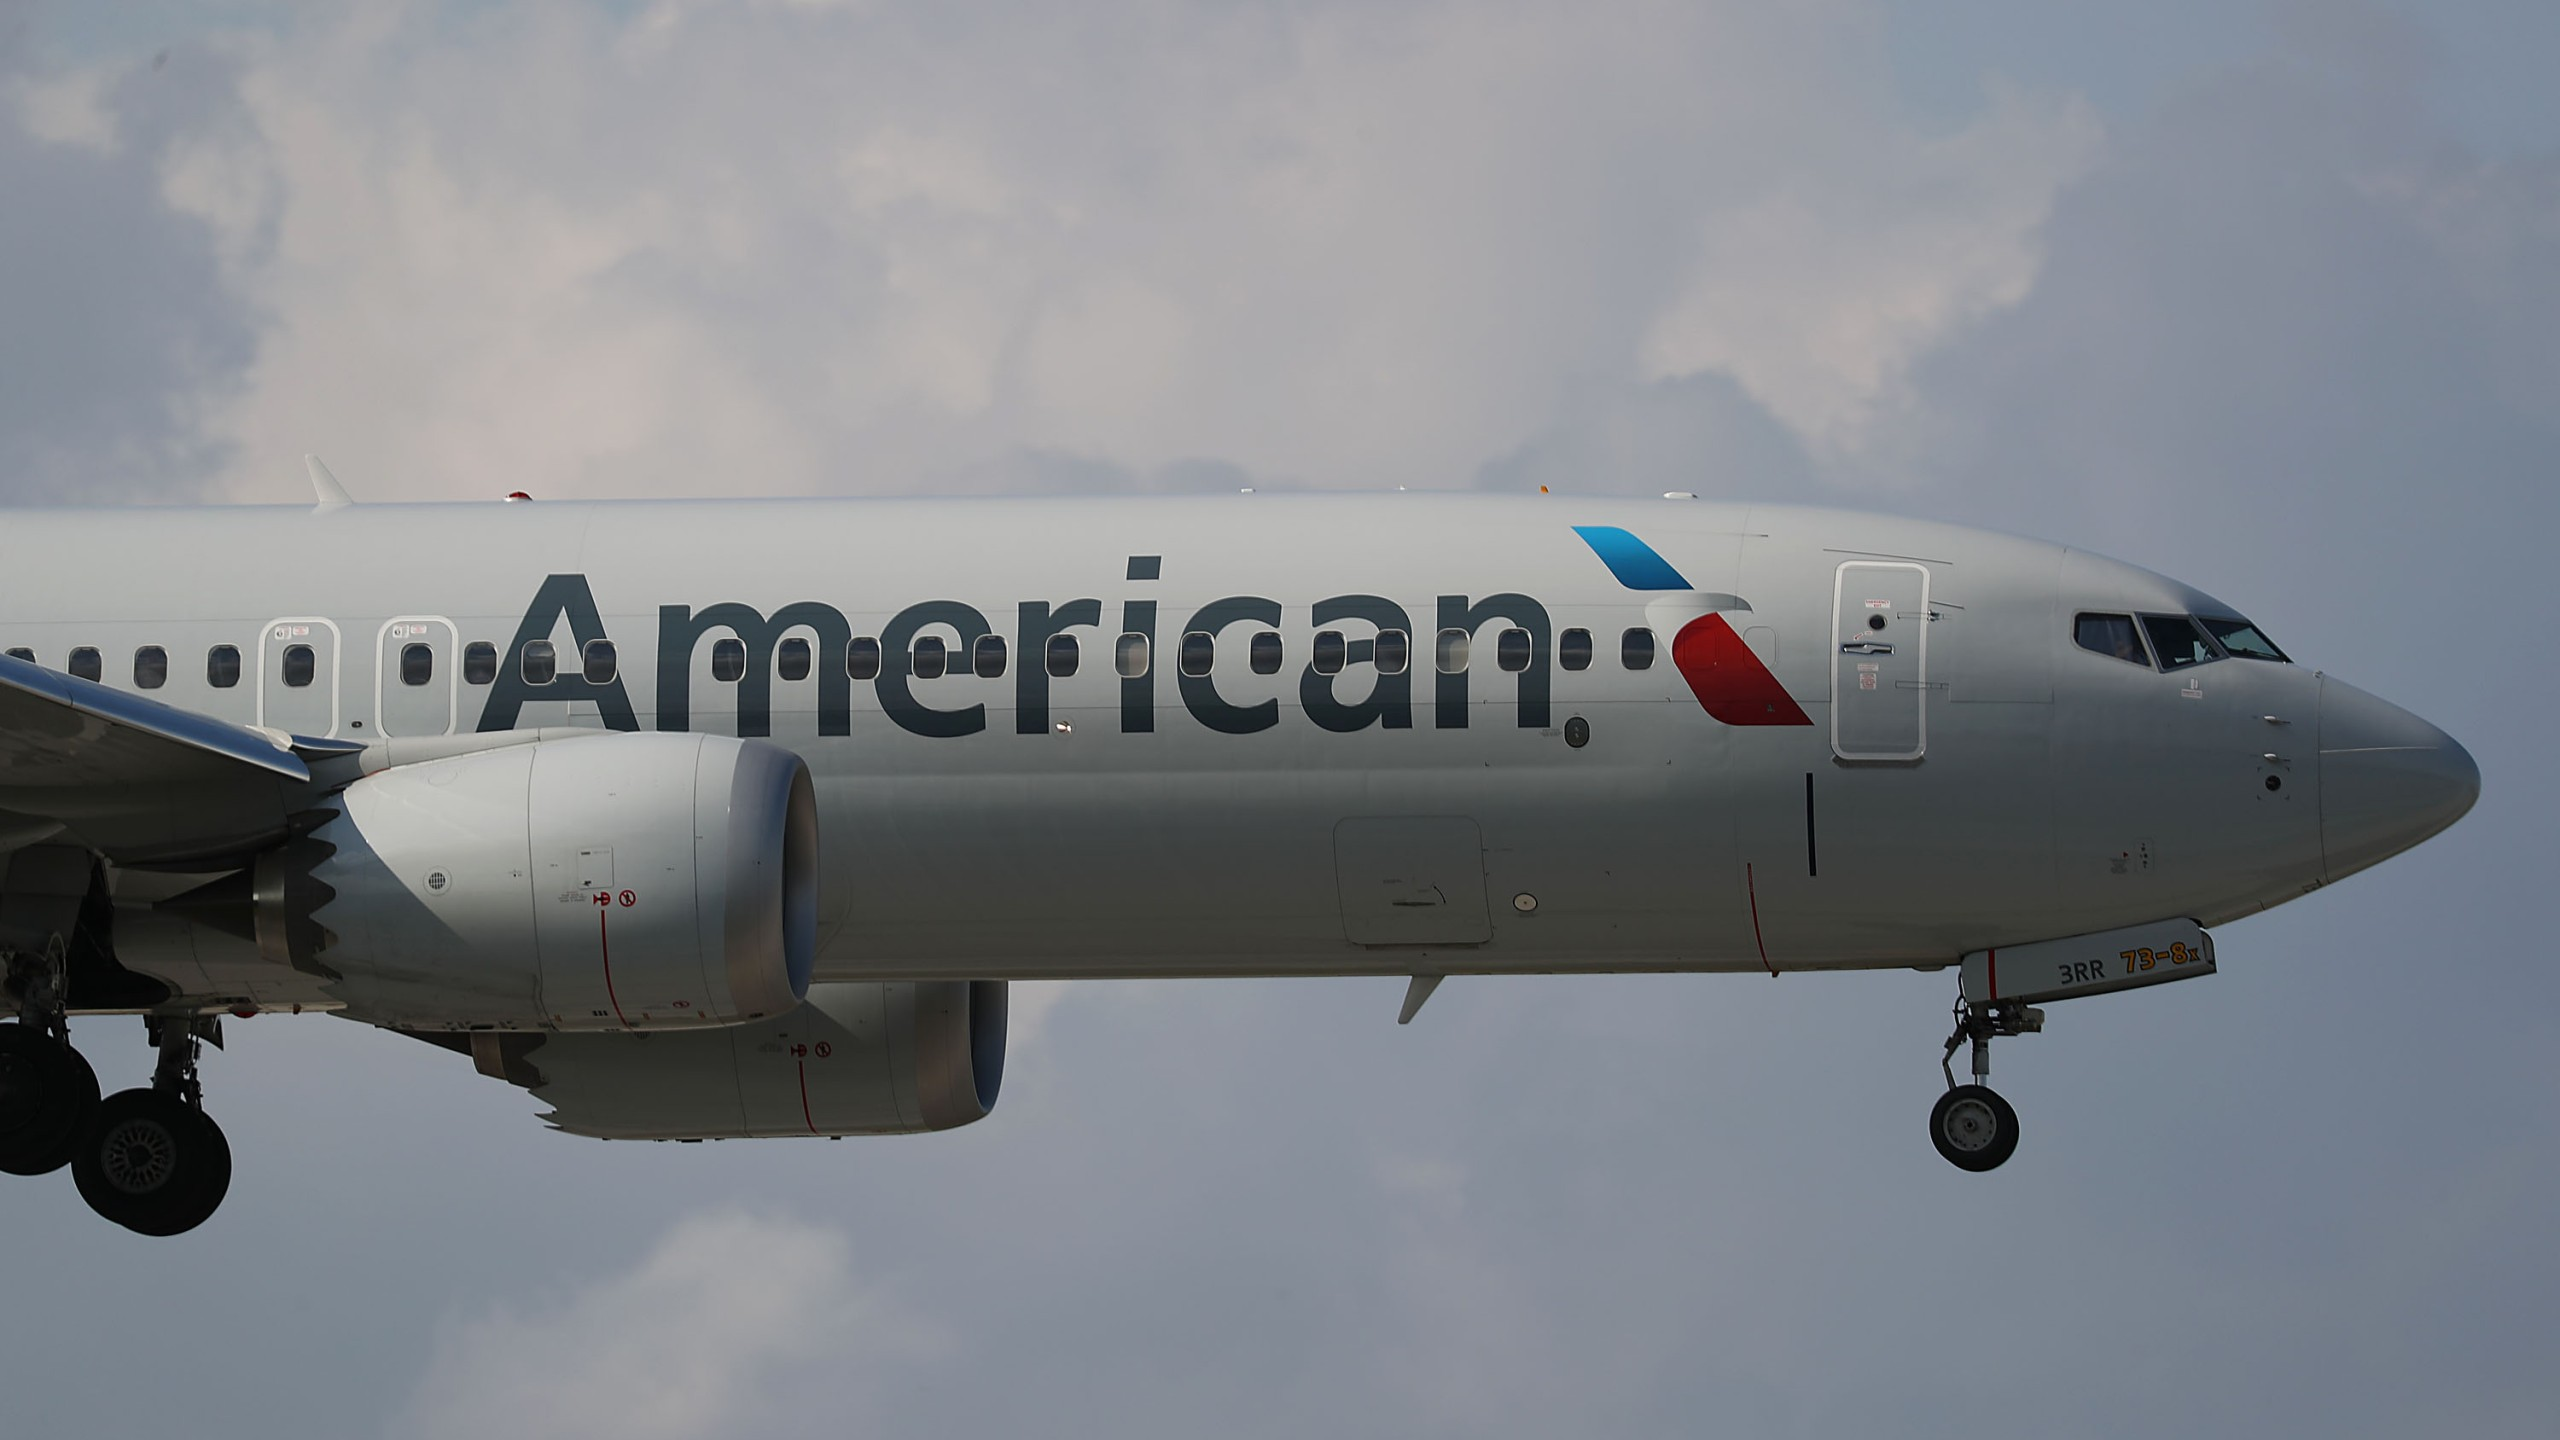 An American Airlines Boeing 737 Max 8 prepares to land at the Miami International Airport on March 12, 2019. (Credit: Joe Raedle/Getty Images)